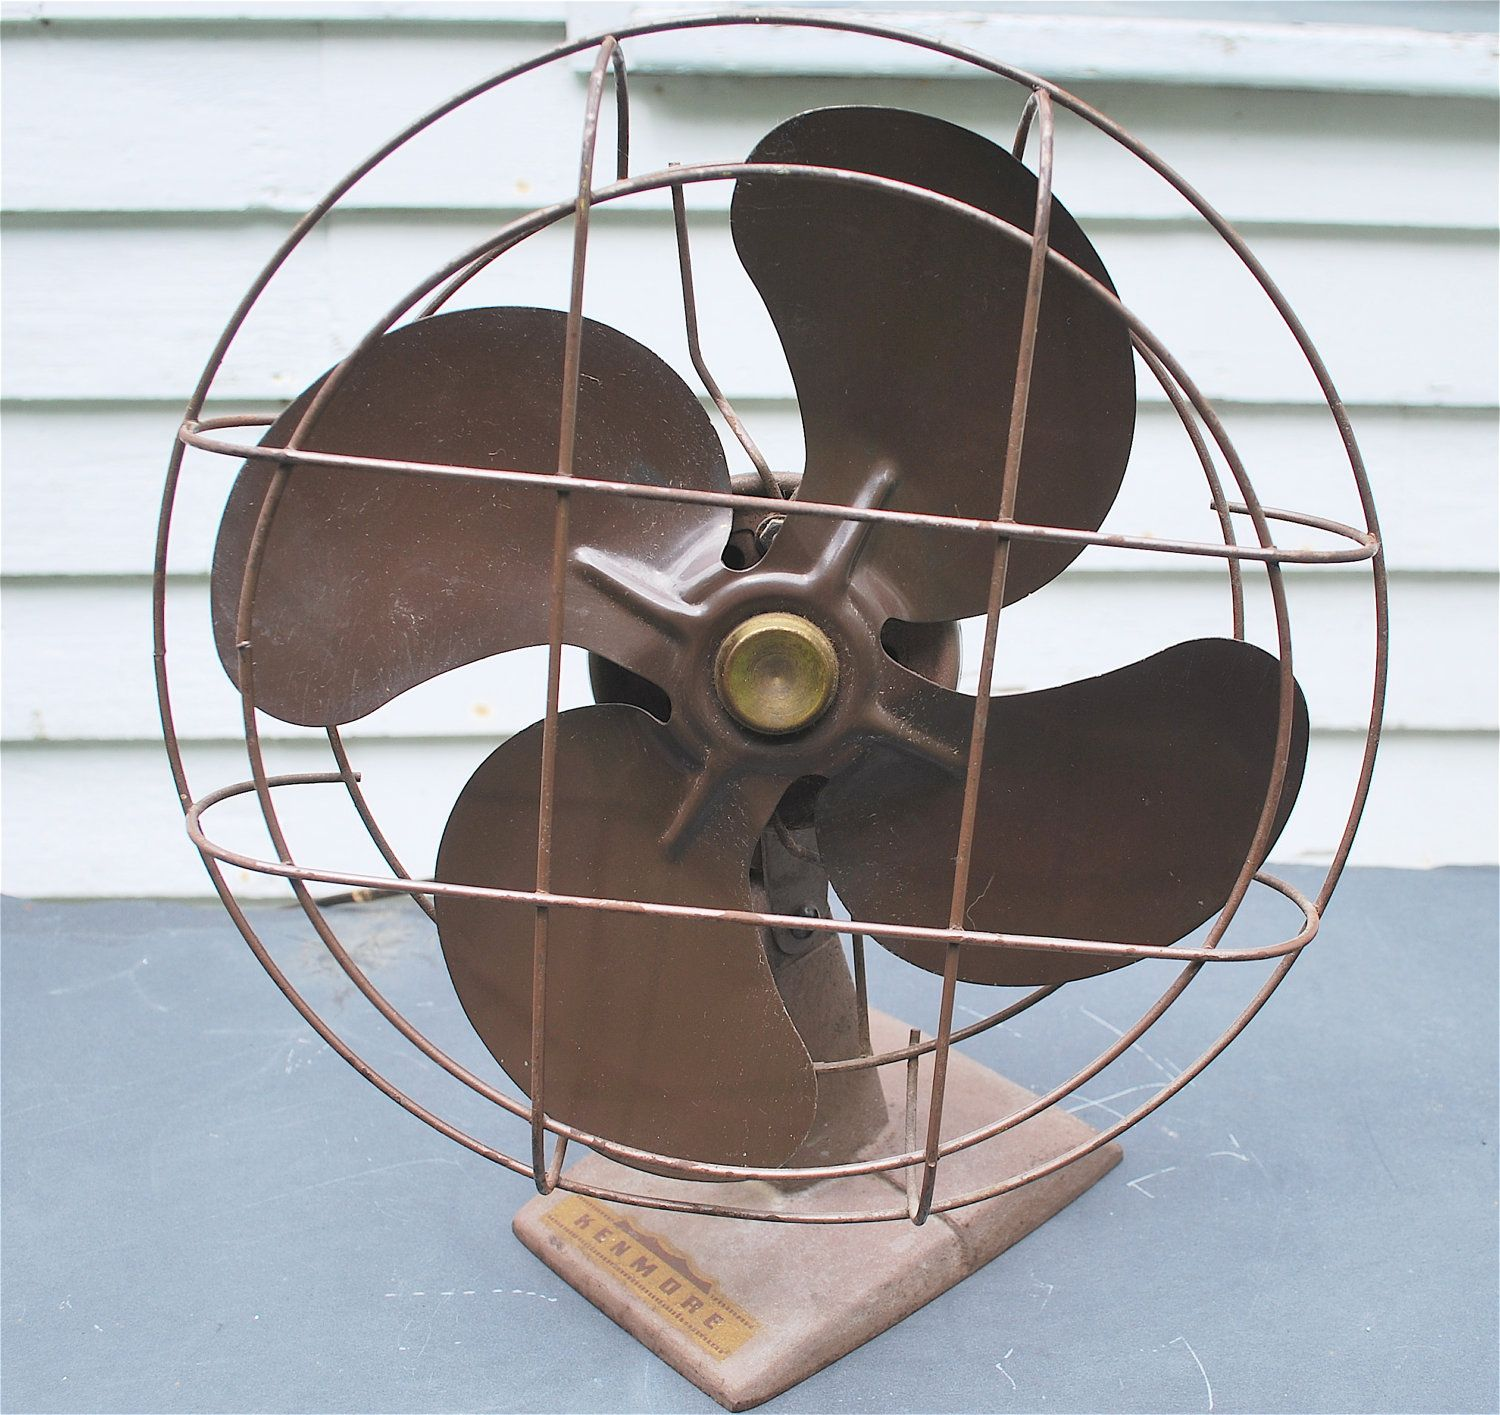 1954 Sears & Roebuck Kenmore Oscillating Fan vintage